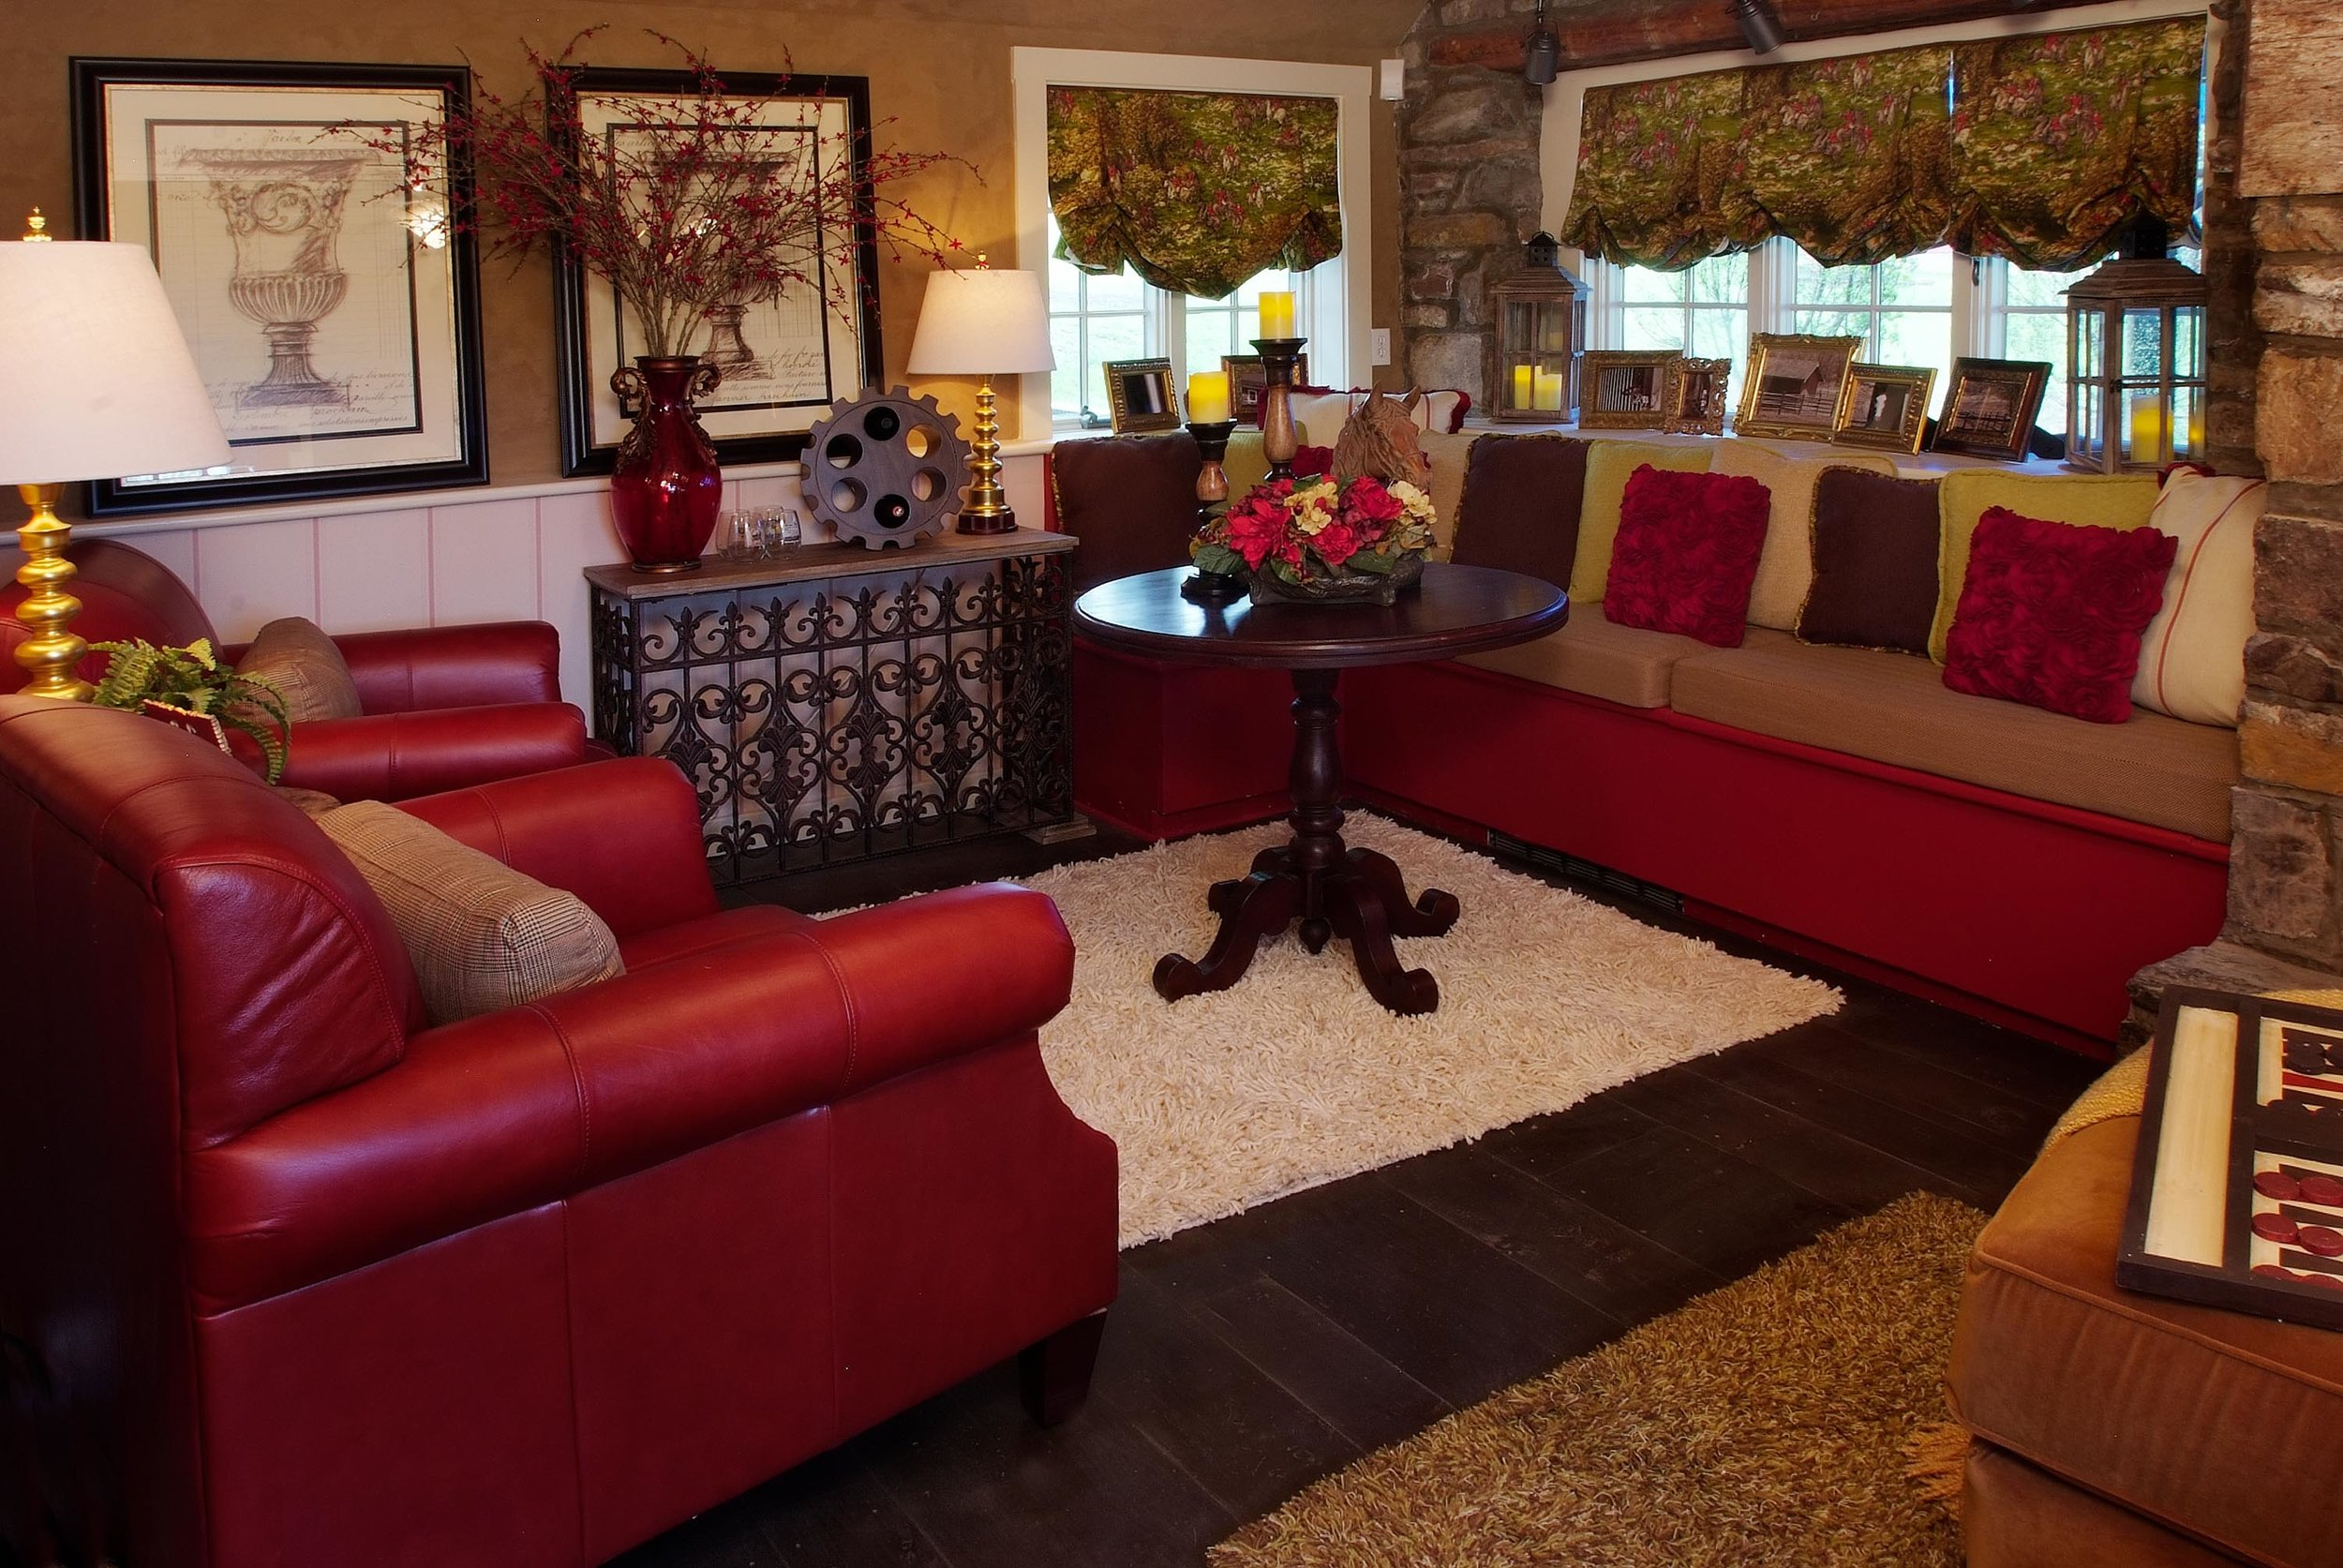 Luxurious living room with red furniture